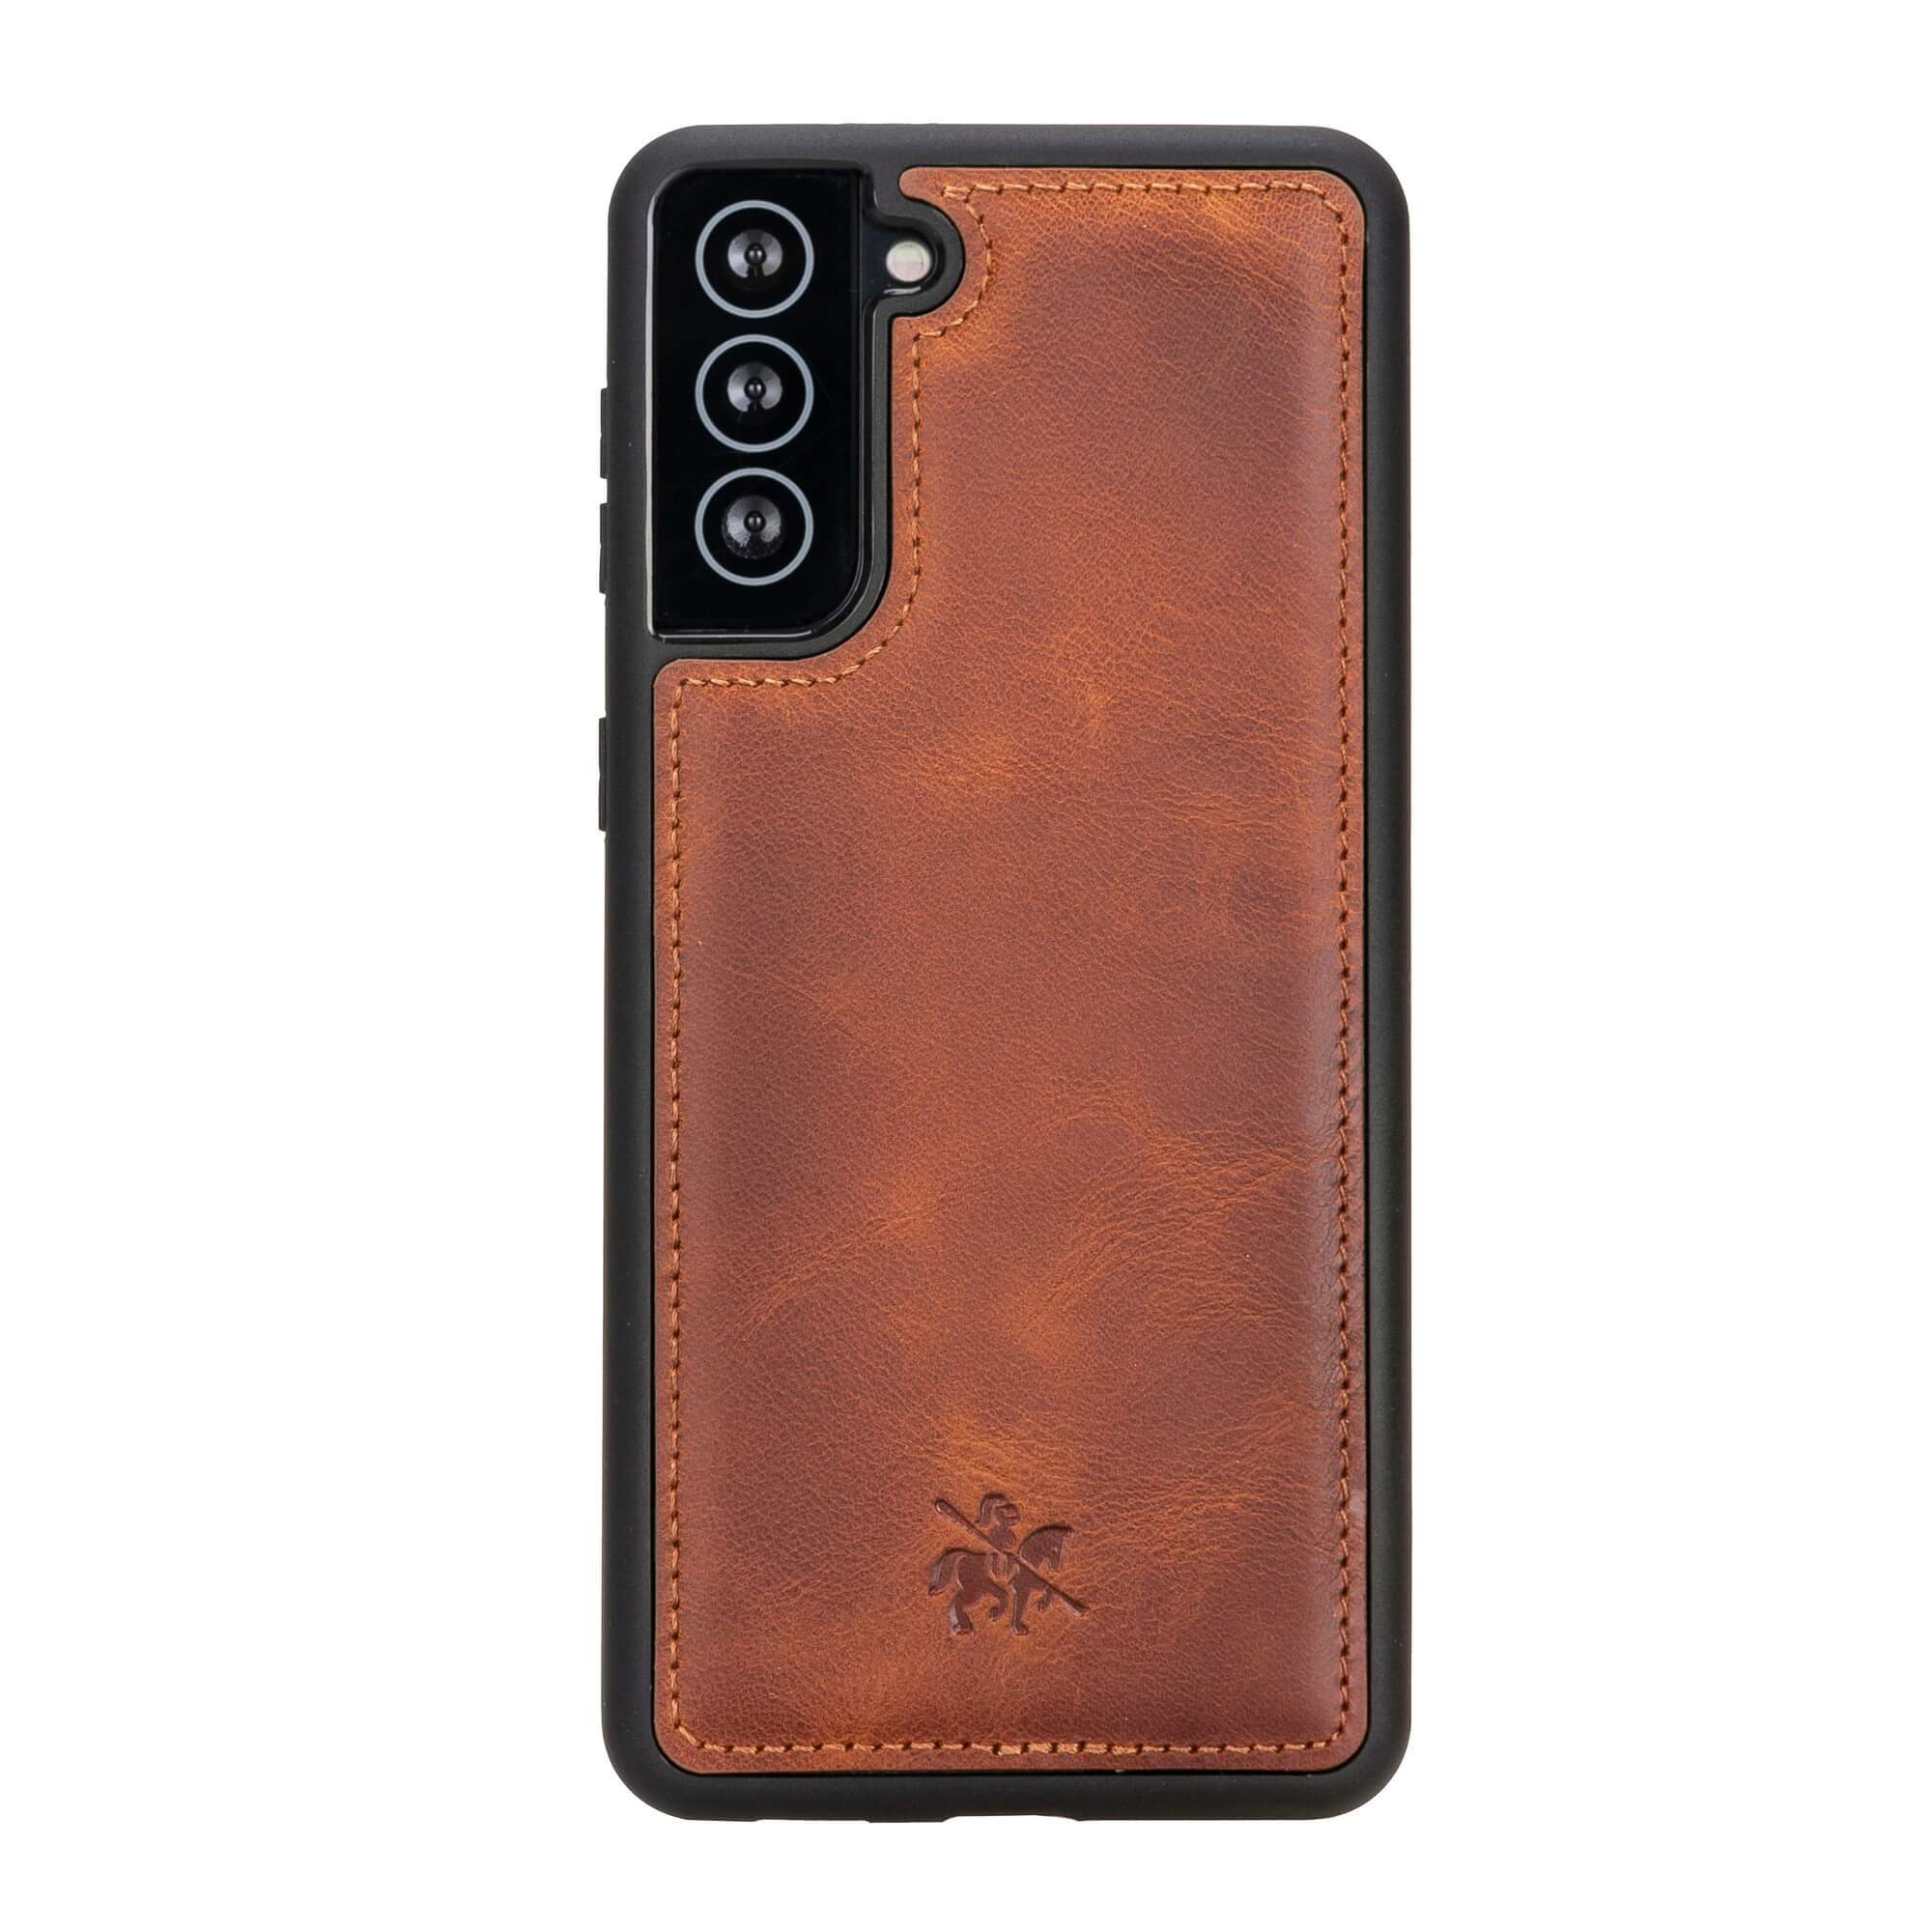 Lucca Snap On Leather Case for Samsung Galaxy S21 Plus